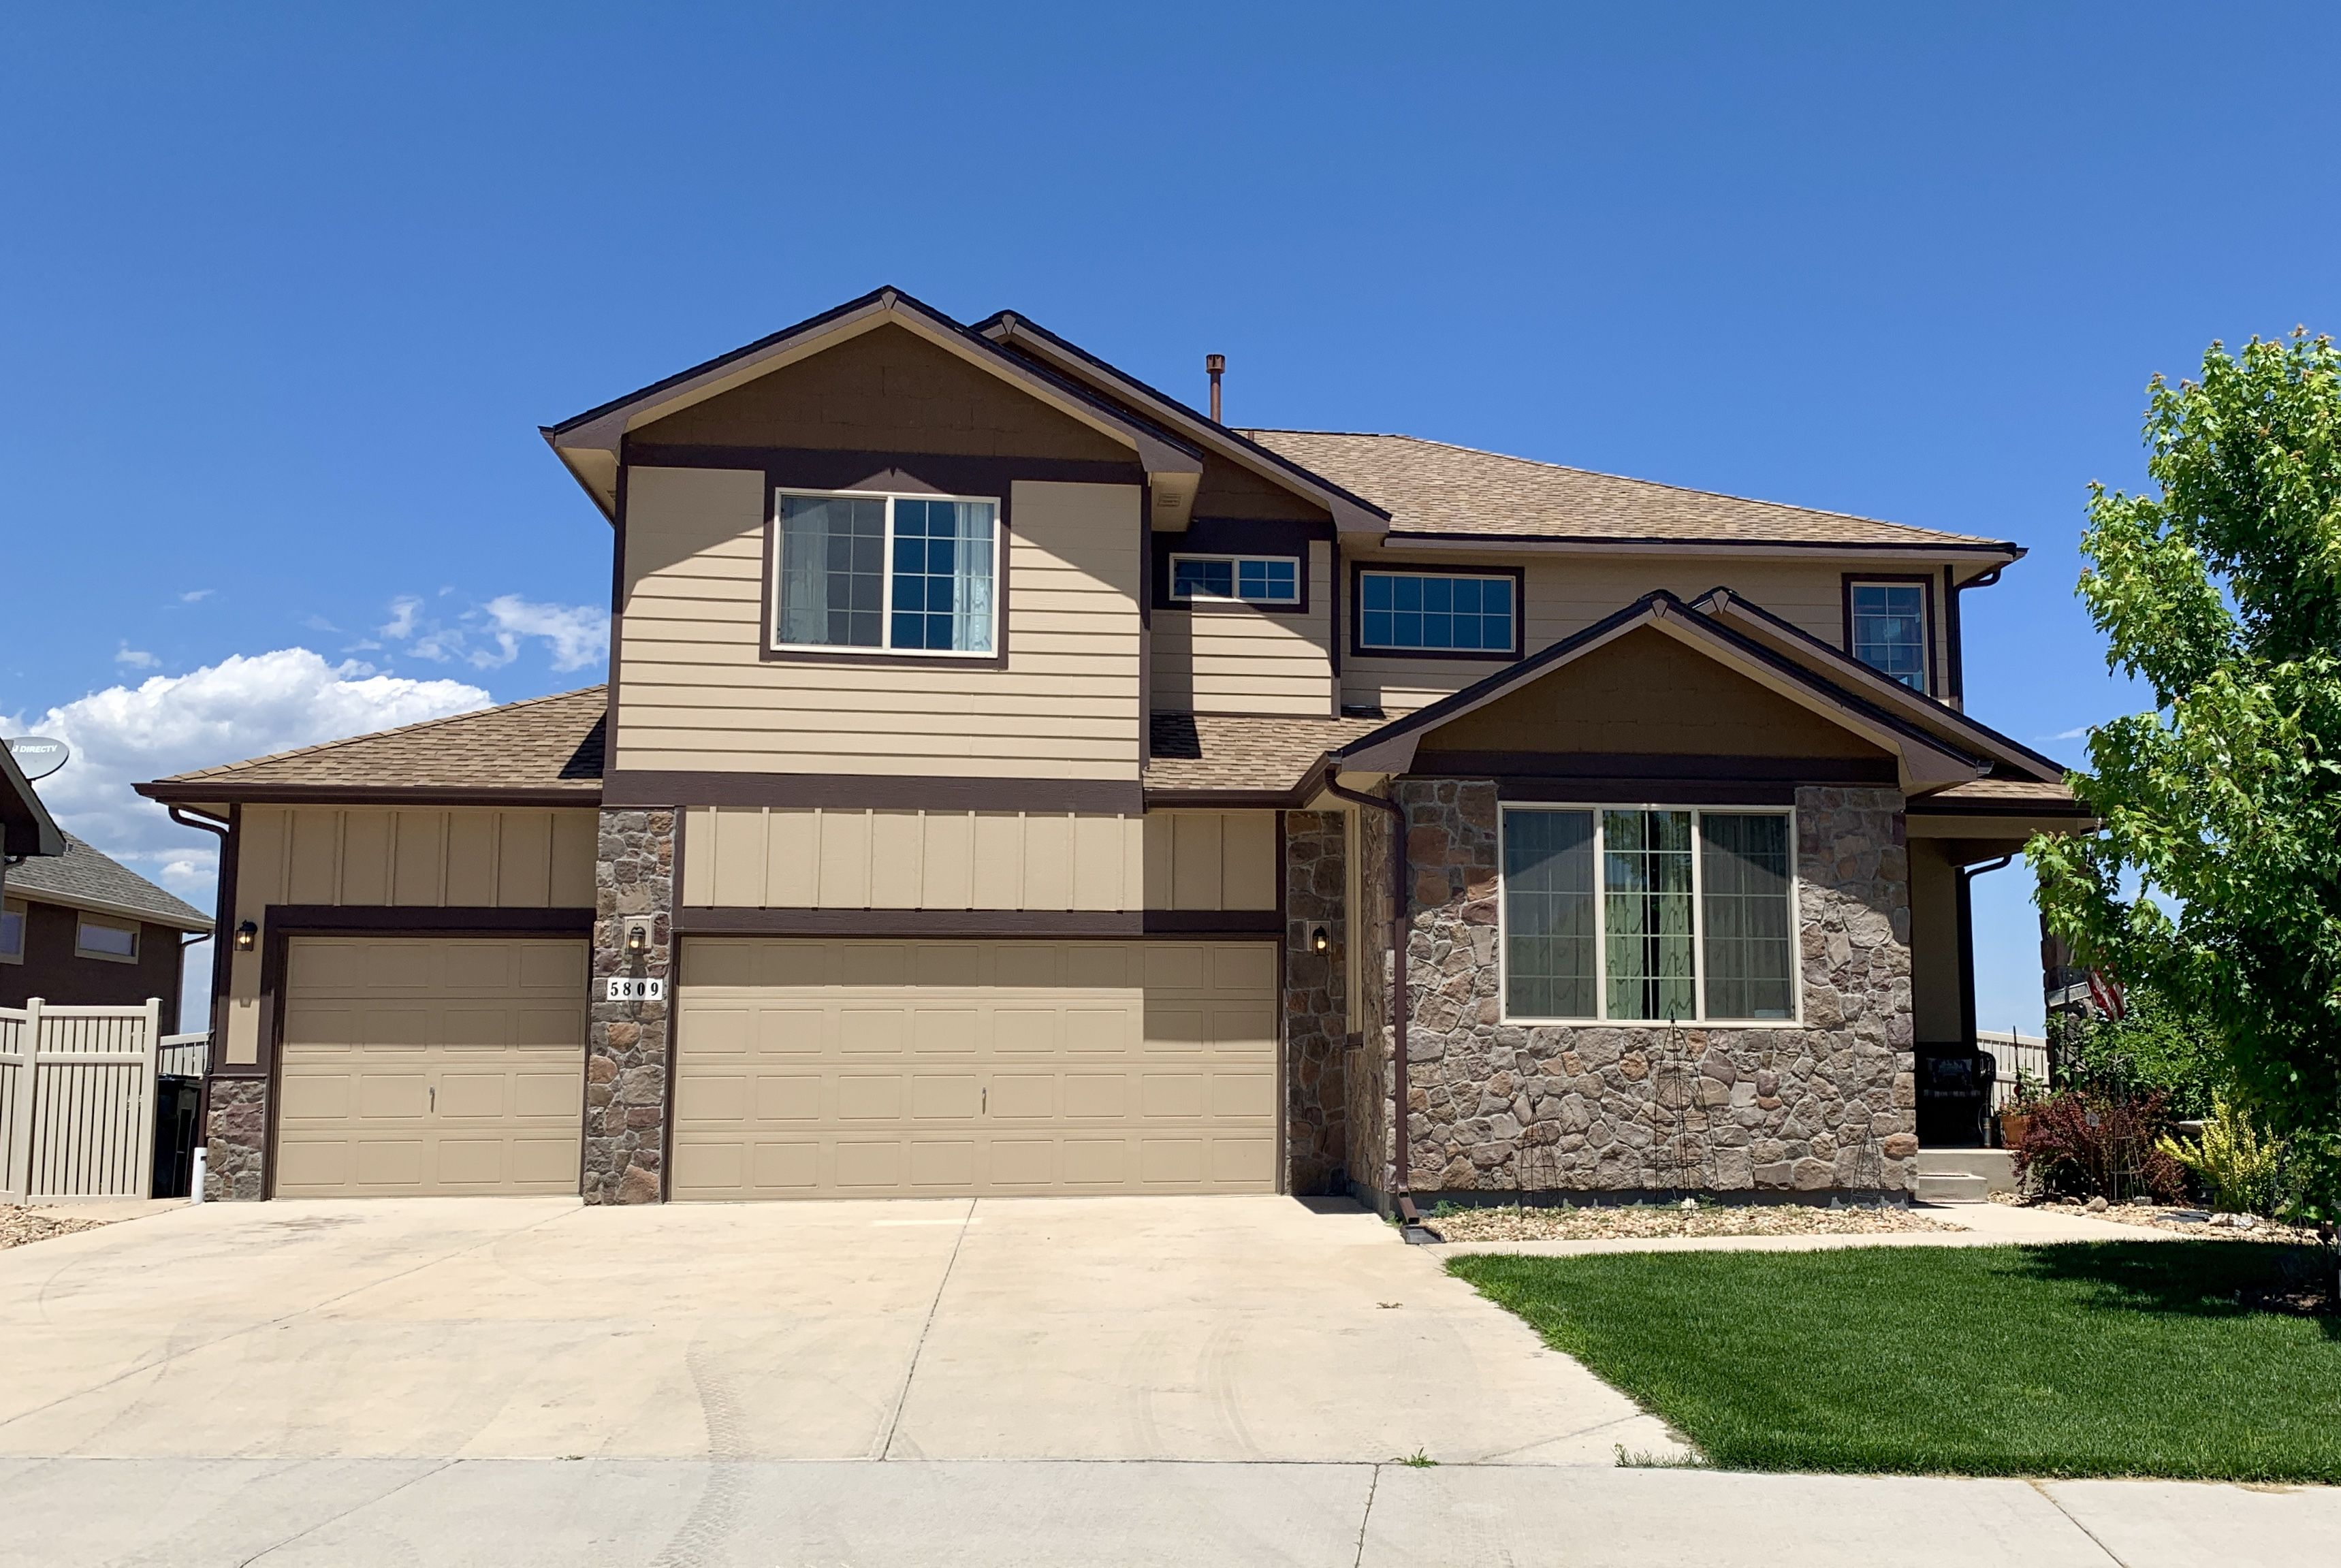 Best We Re Roofed This Home In Firestone That Was Hit With Hail 640 x 480